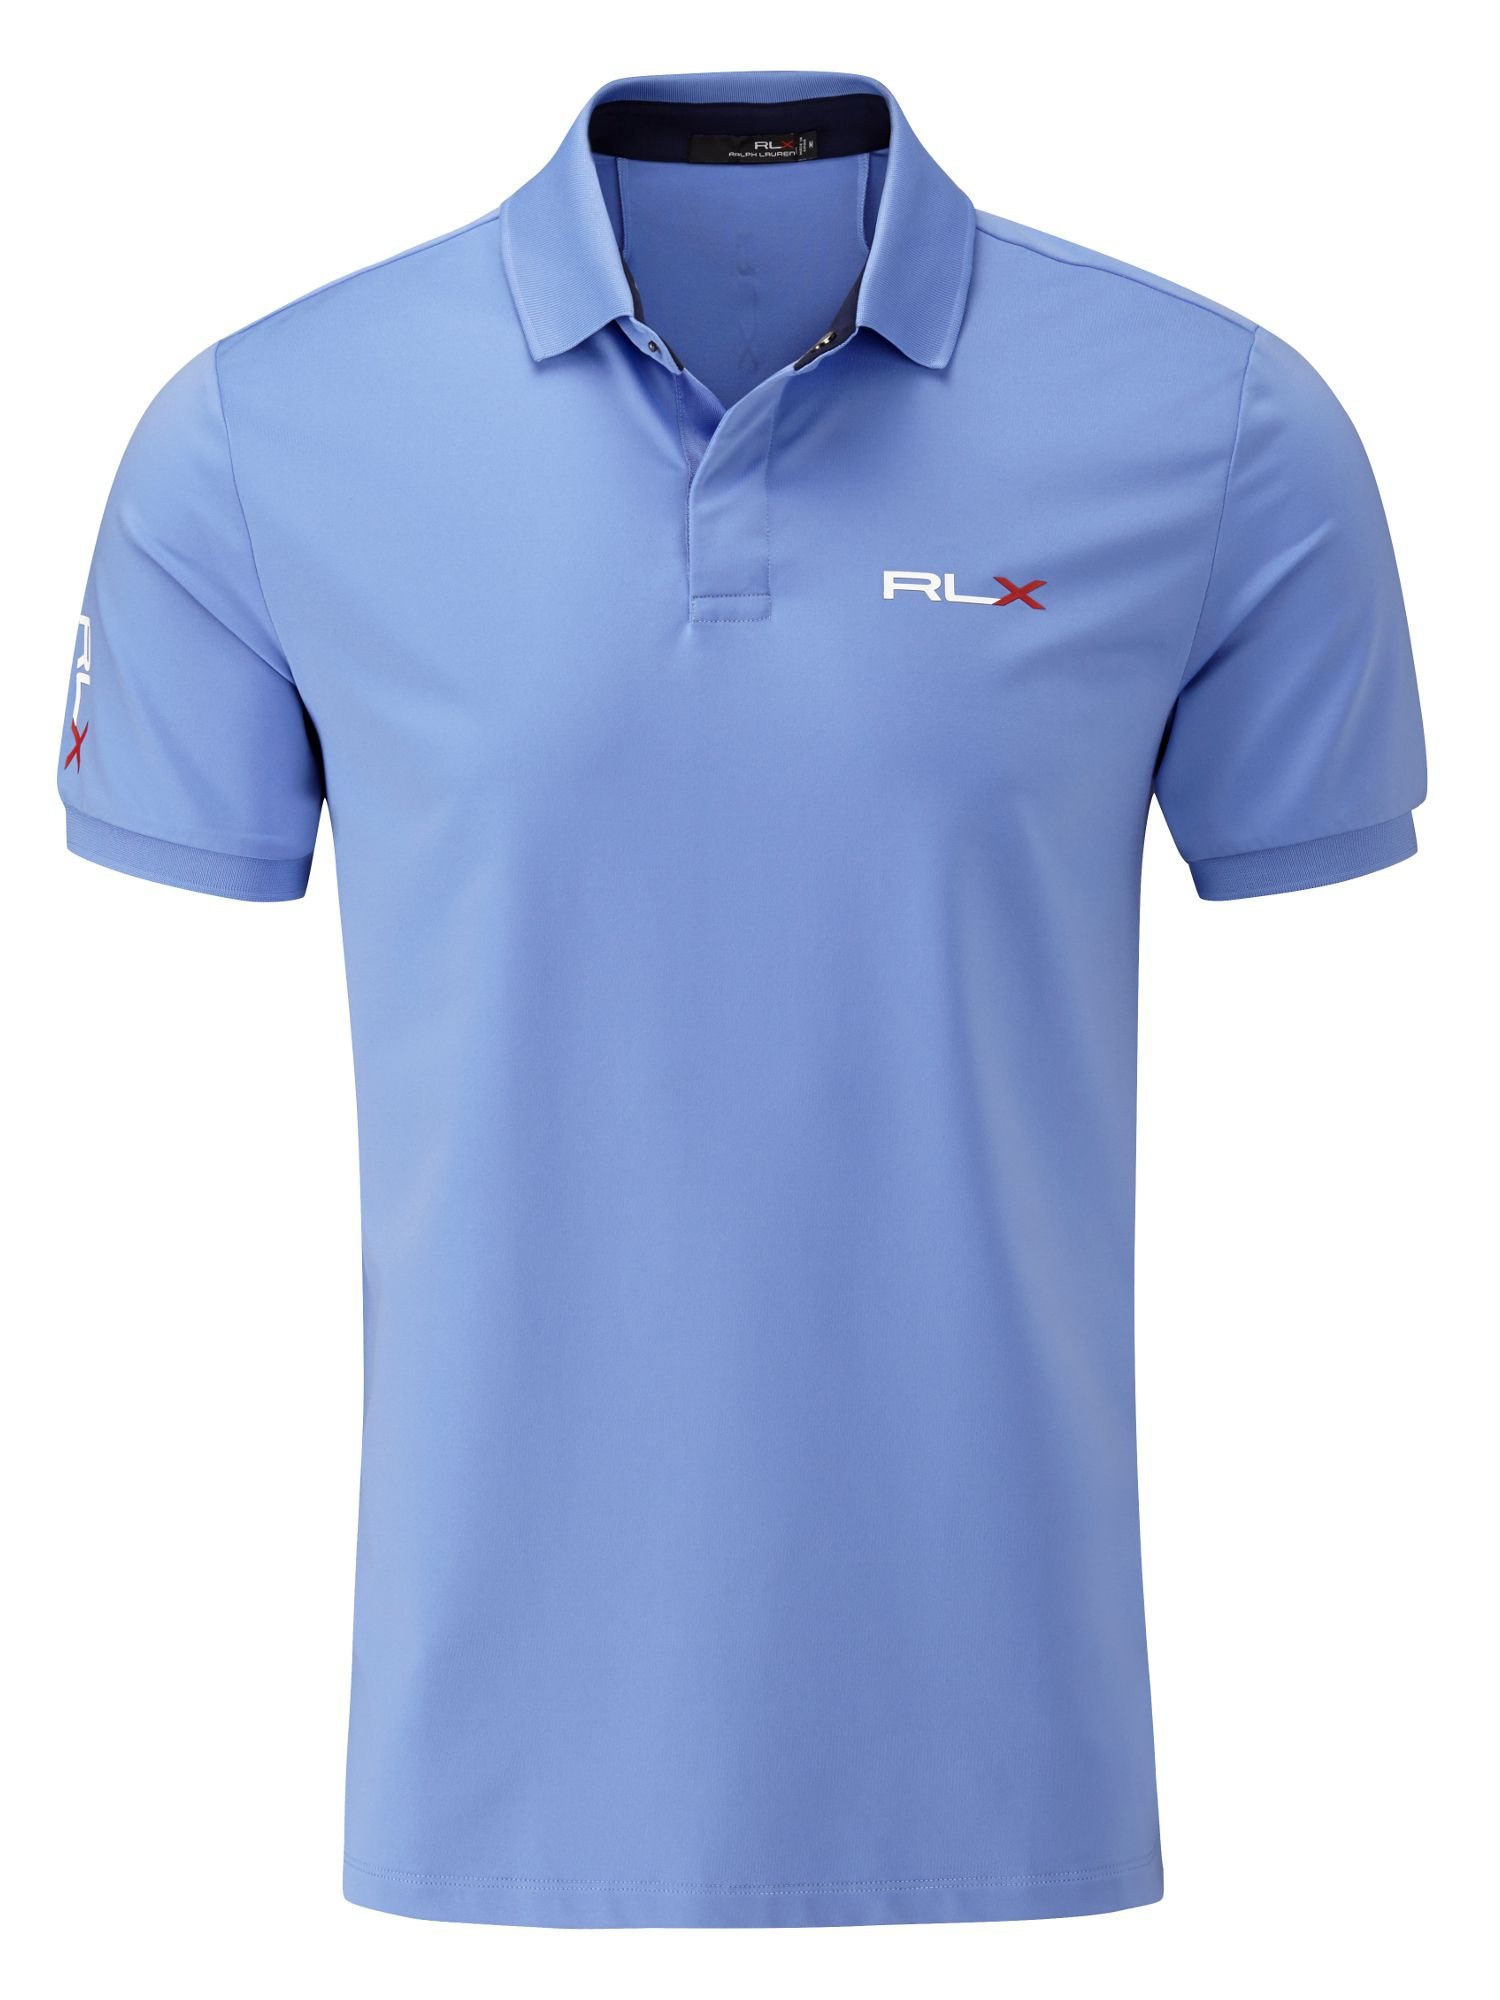 Ralph Lauren Golf Solid Polo Shirt Tour Fit In Blue For